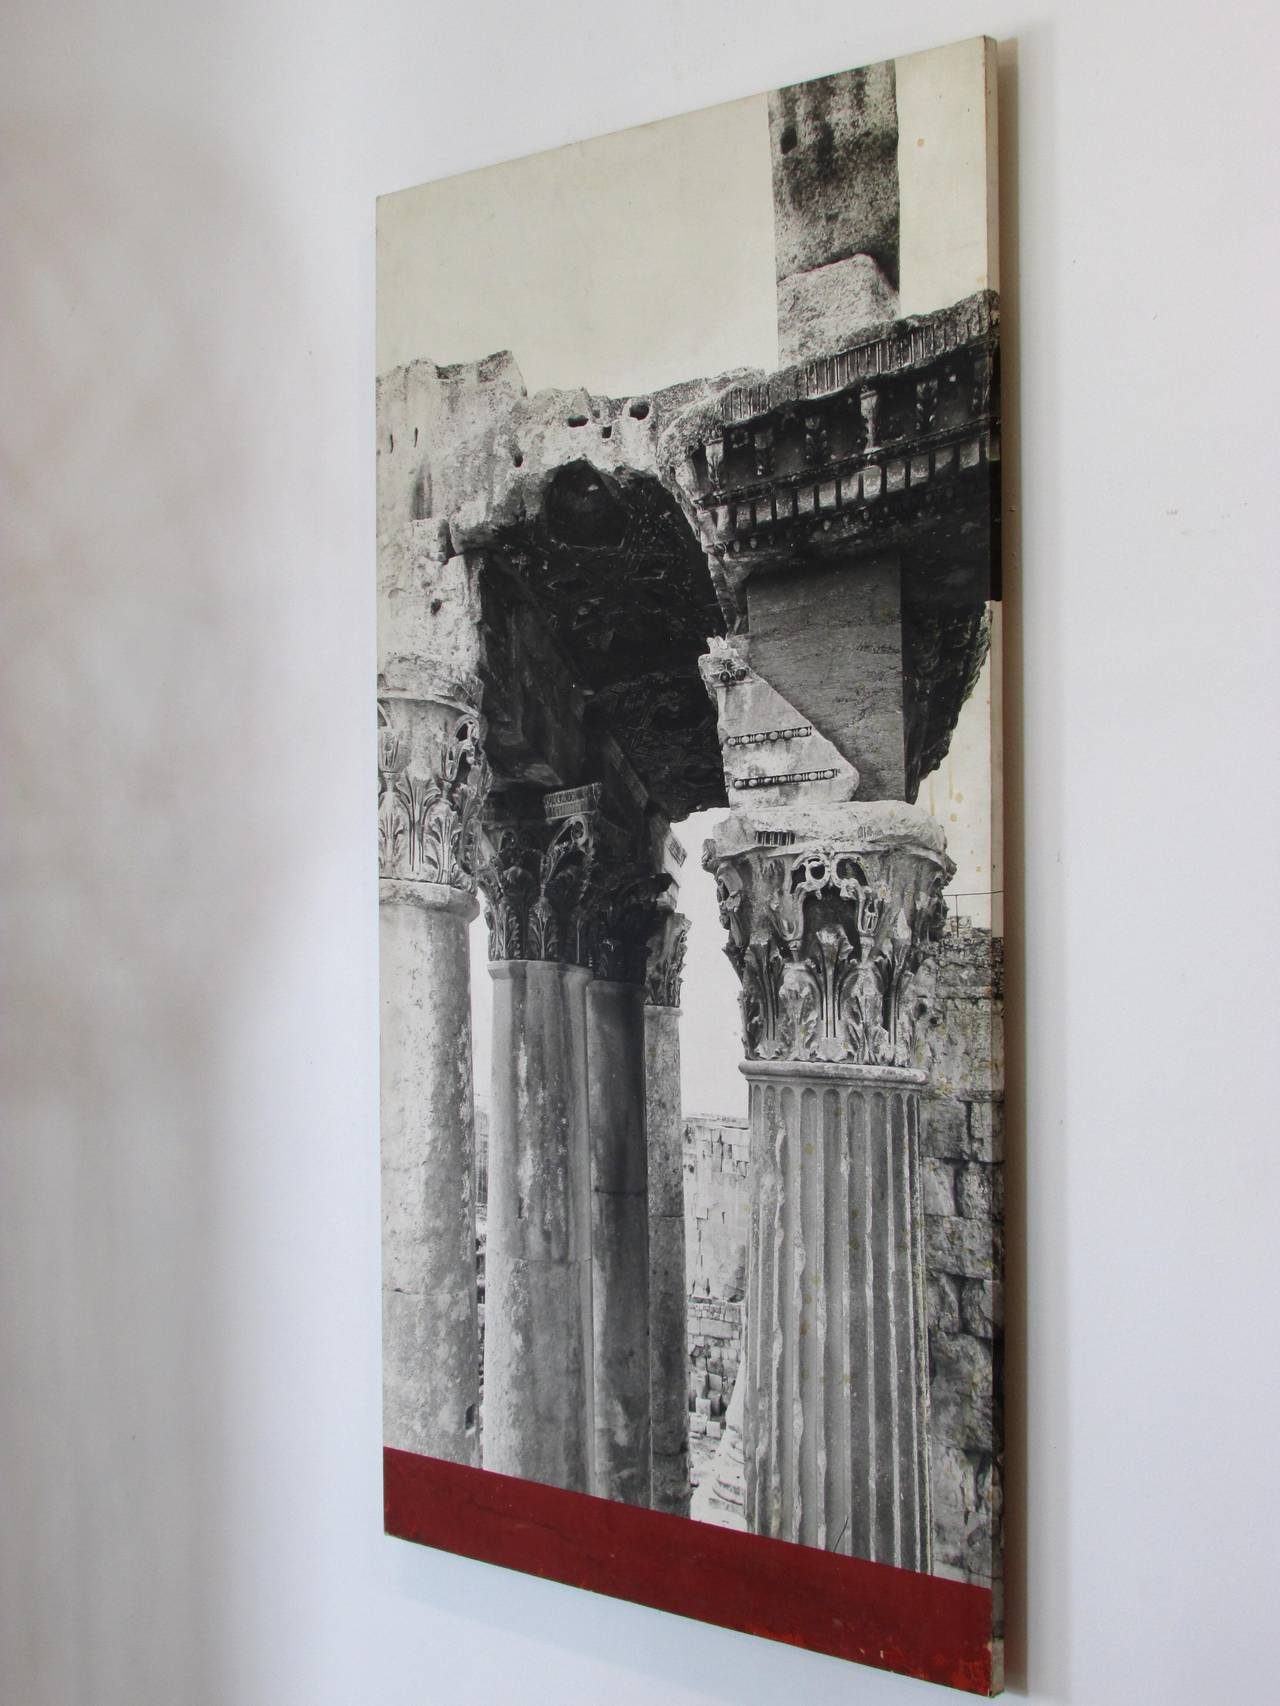 Marvelous photograph of Baalbek Ruins Photo from New York Worlds Fair 1964 at 1stdibs with #5E2724 color and 1280x1706 pixels